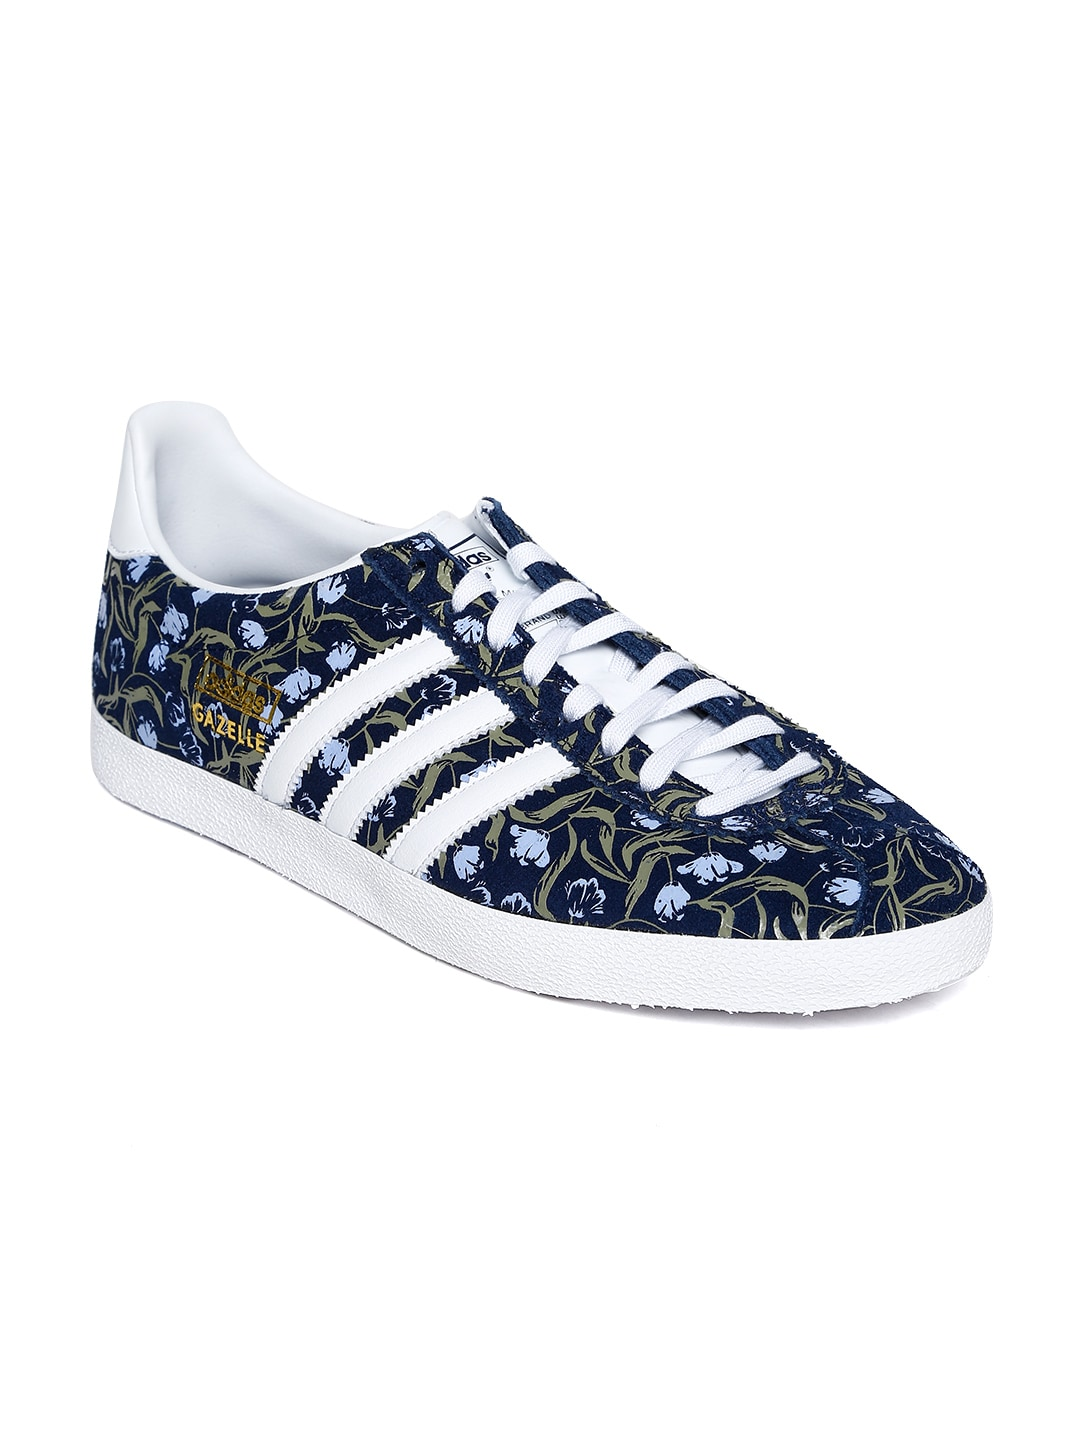 humedad canto Conejo  adidas og gazelle womens Online Shopping for Women, Men, Kids Fashion &  Lifestyle|Free Delivery & Returns! -